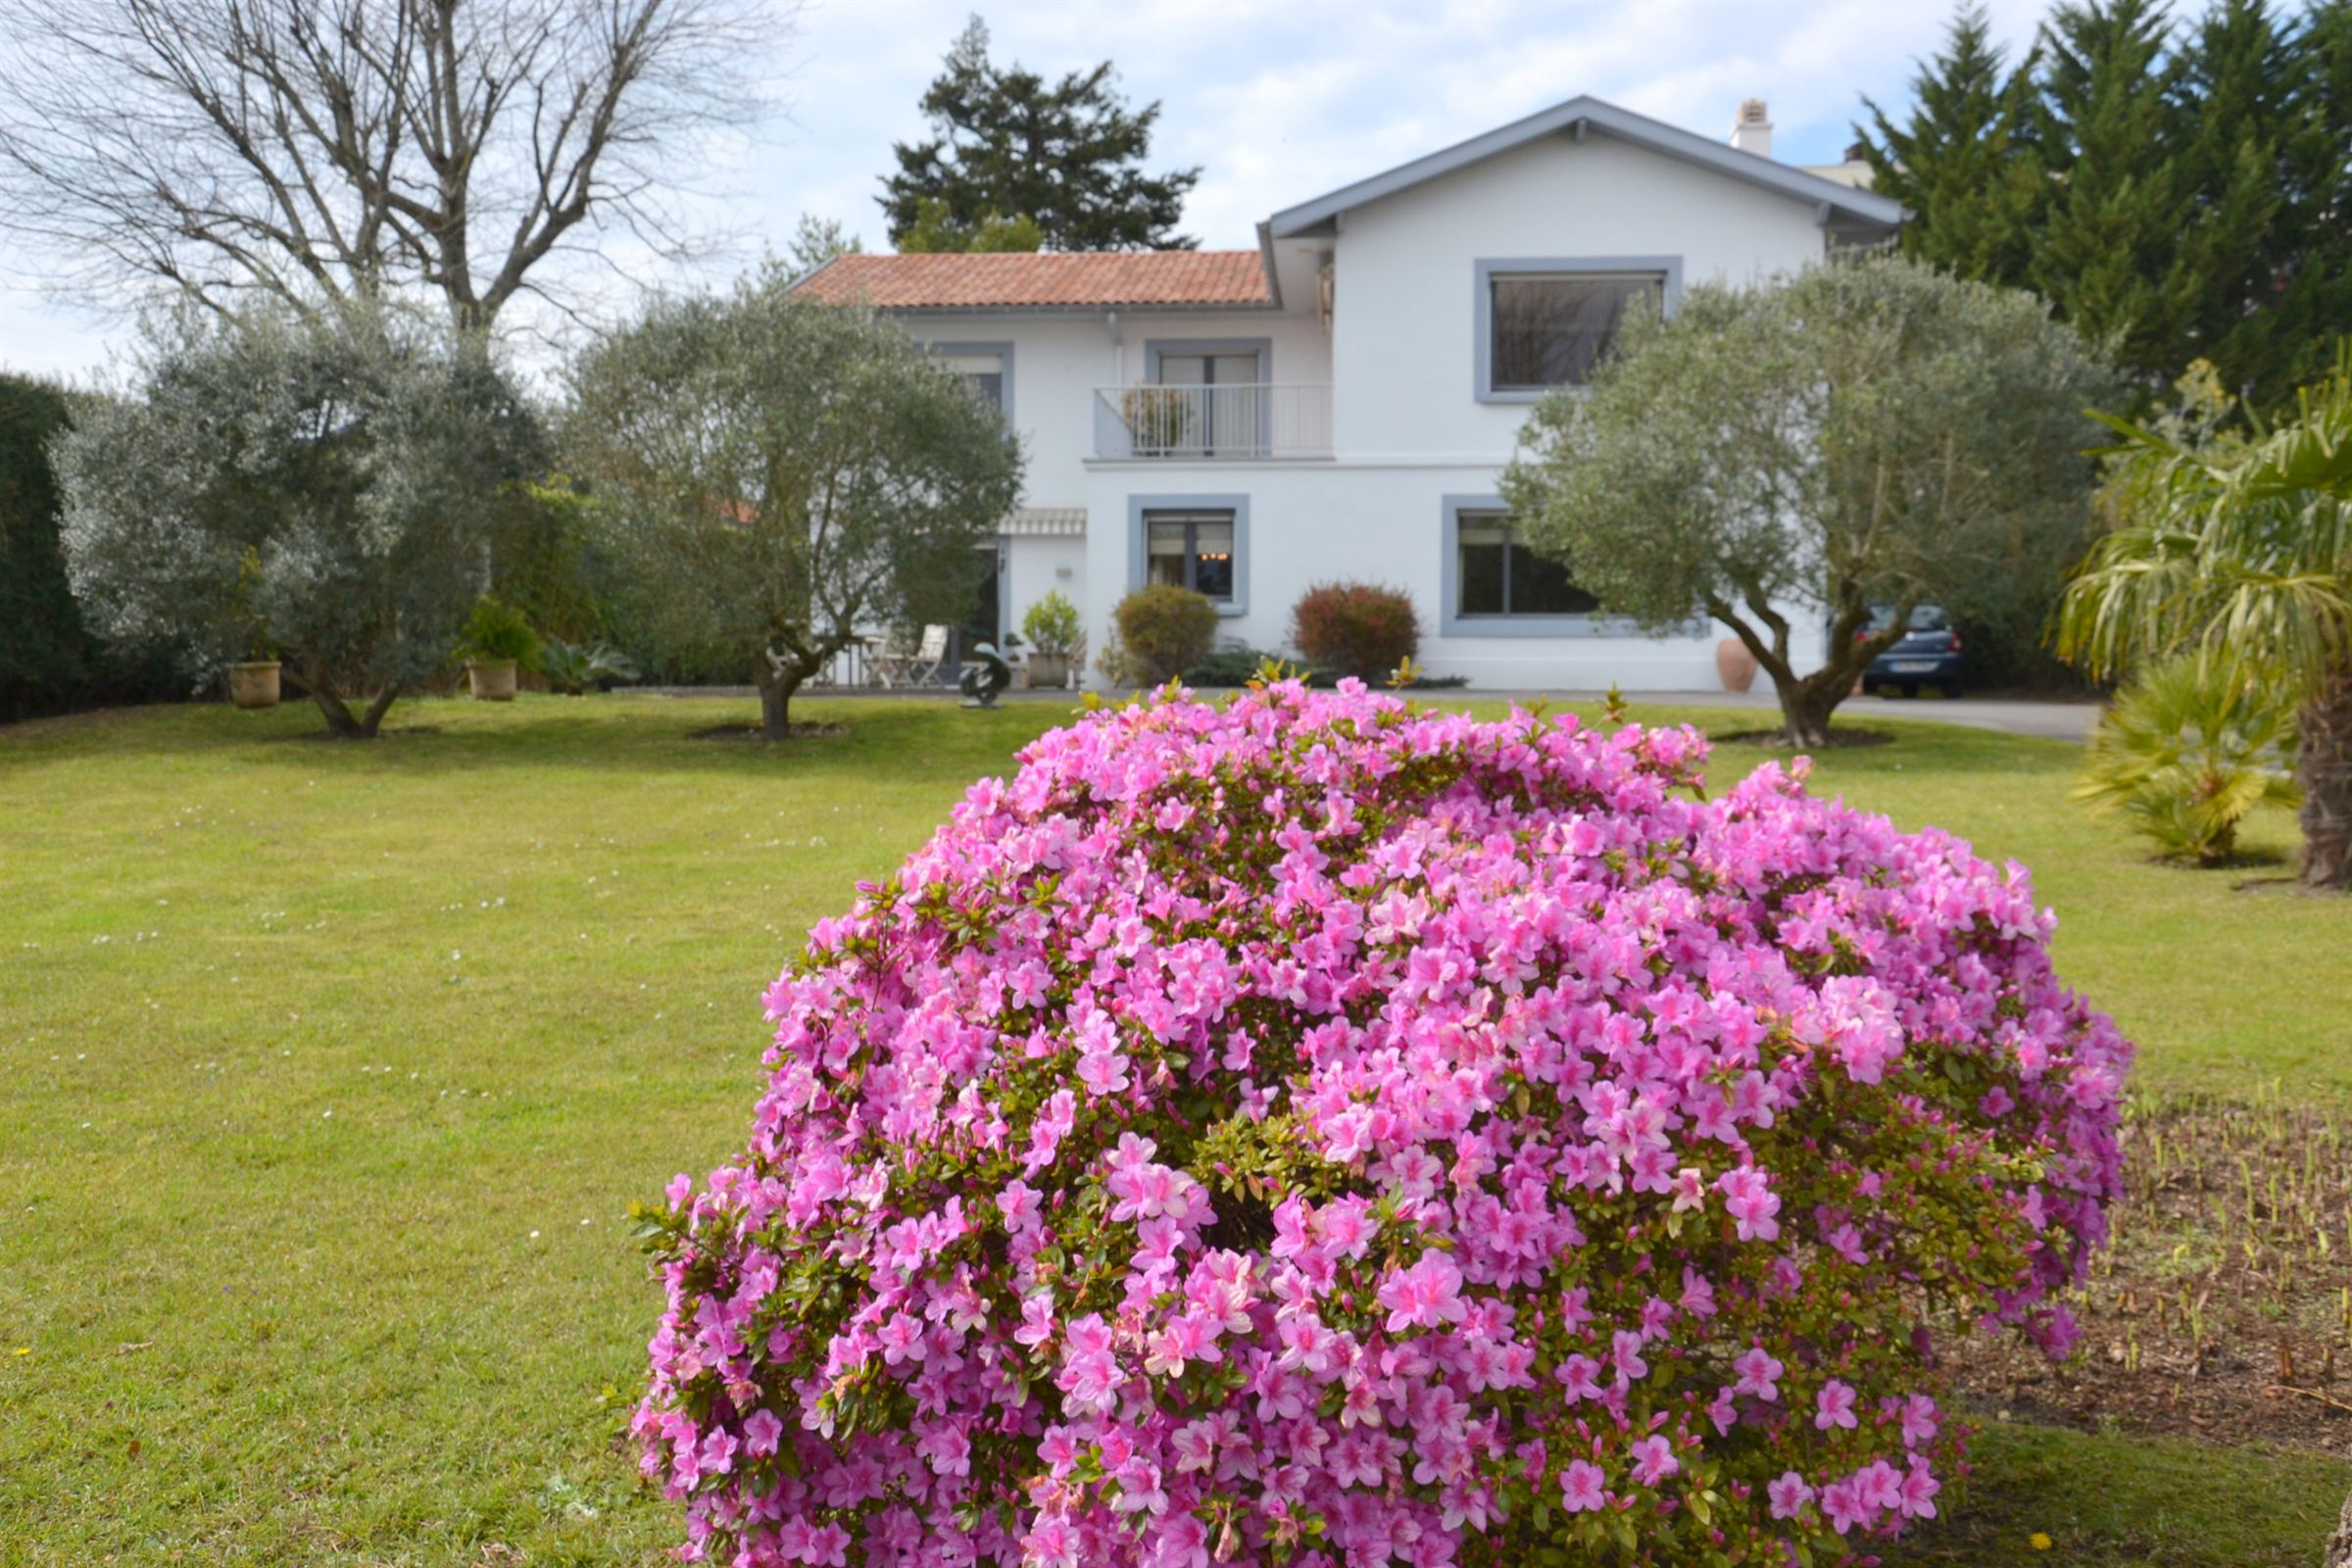 Single Family Home for Sale at Biarritz Le Parc d'Hiver Biarritz, Aquitaine, 64200 France